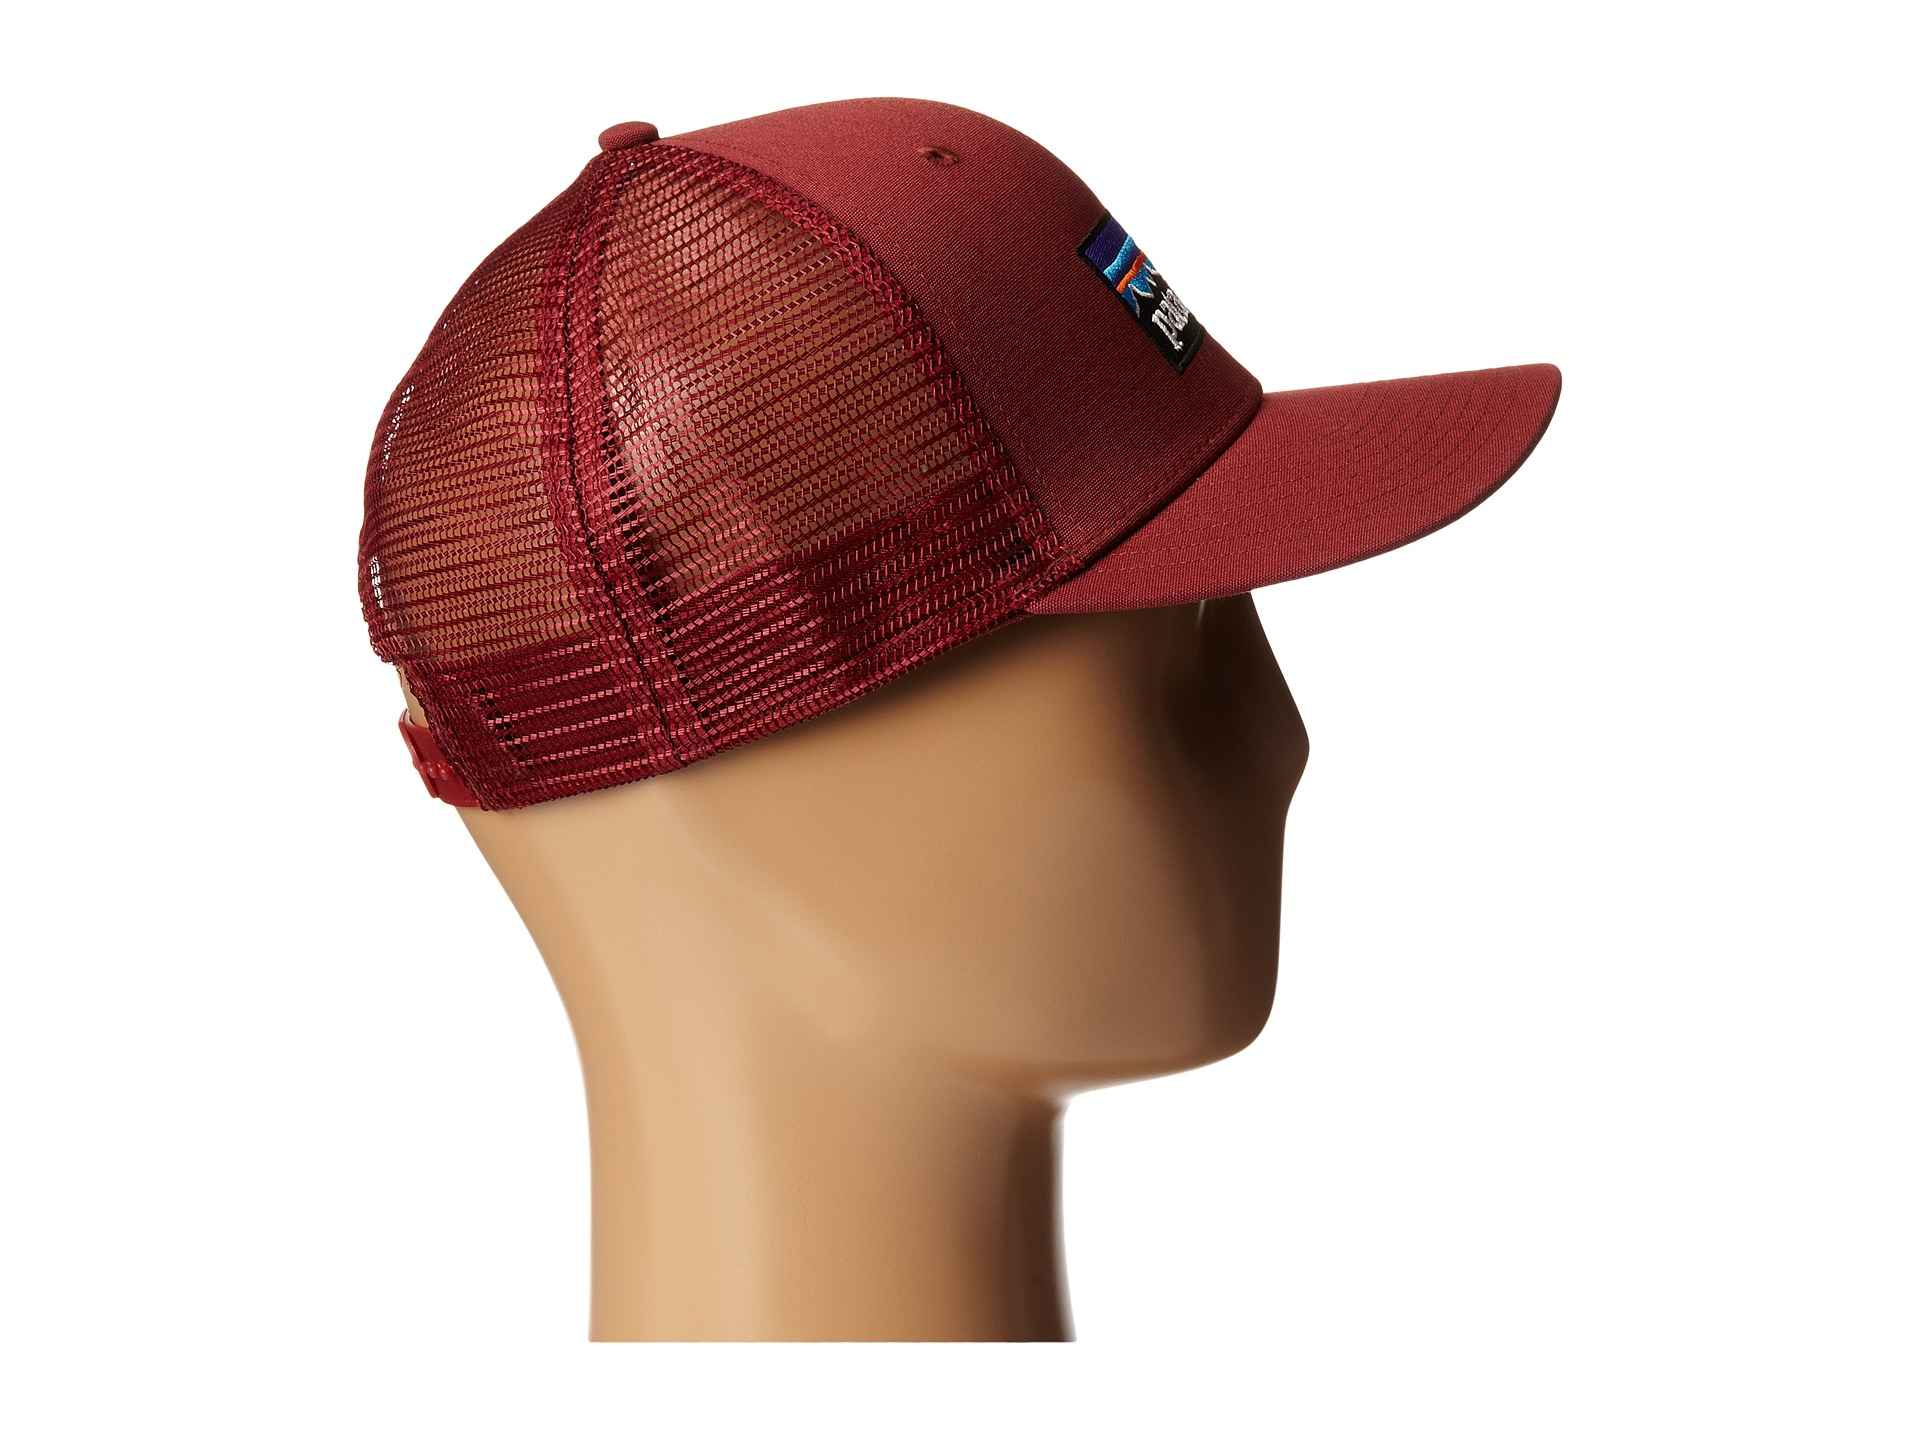 Lyst - Patagonia P6 Trucker Hat in Red for Men dd64aff23754